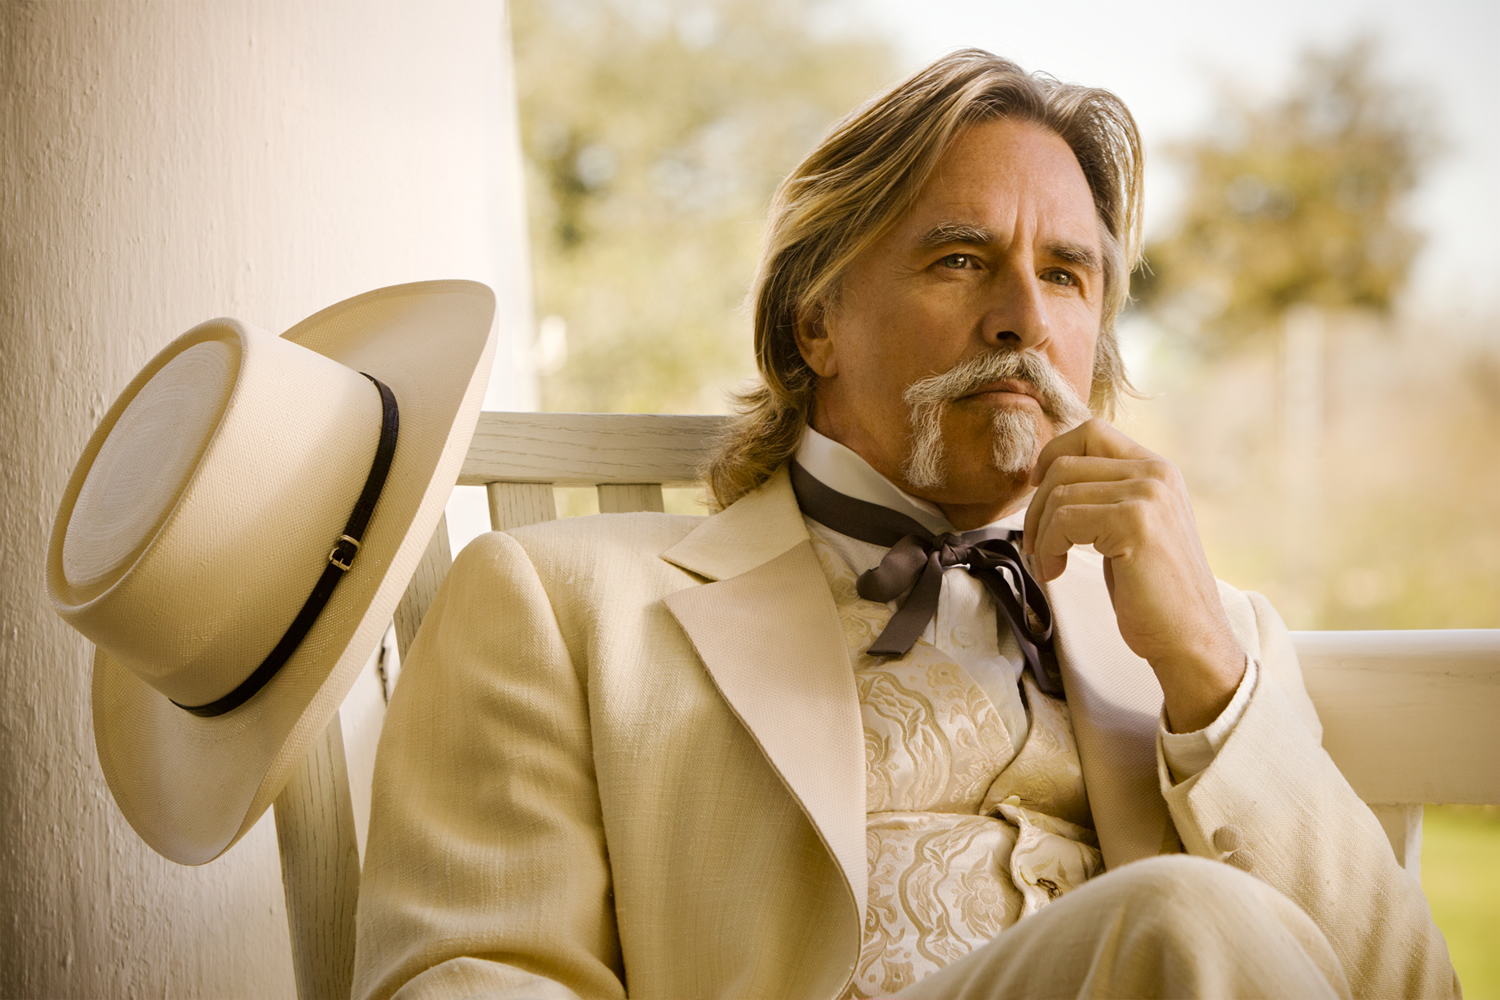 django unchained don johnson Ranking: Every Quentin Tarantino Movie from Worst to Best